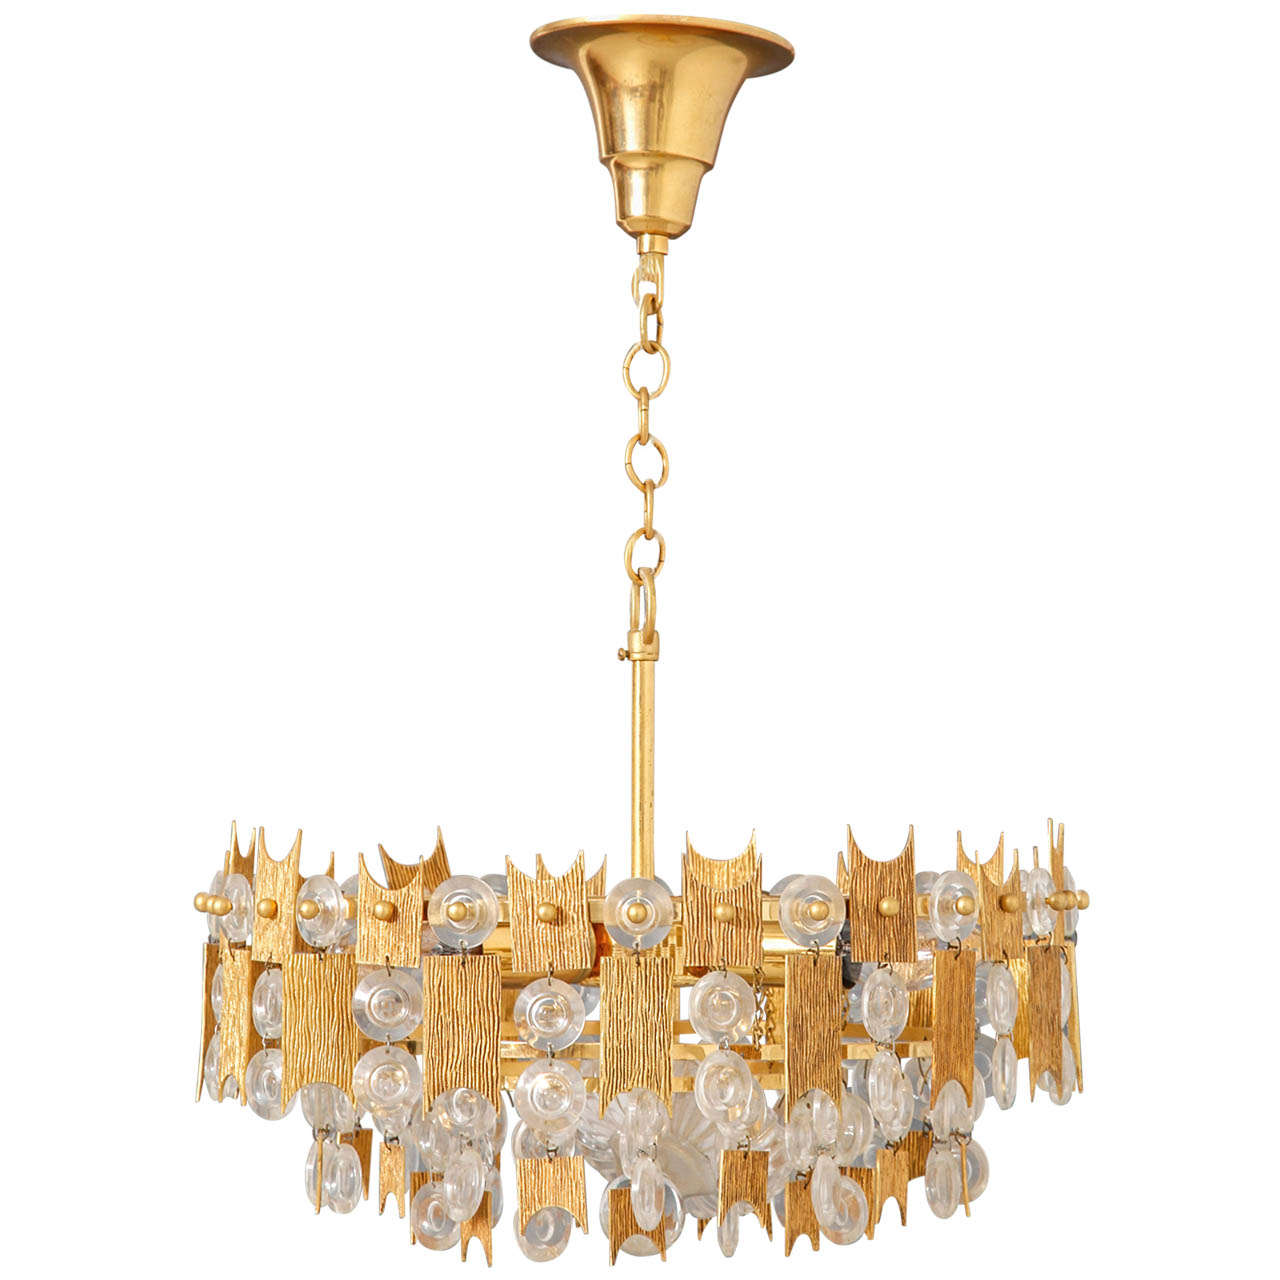 Chandelier designed by Palwa,Germany